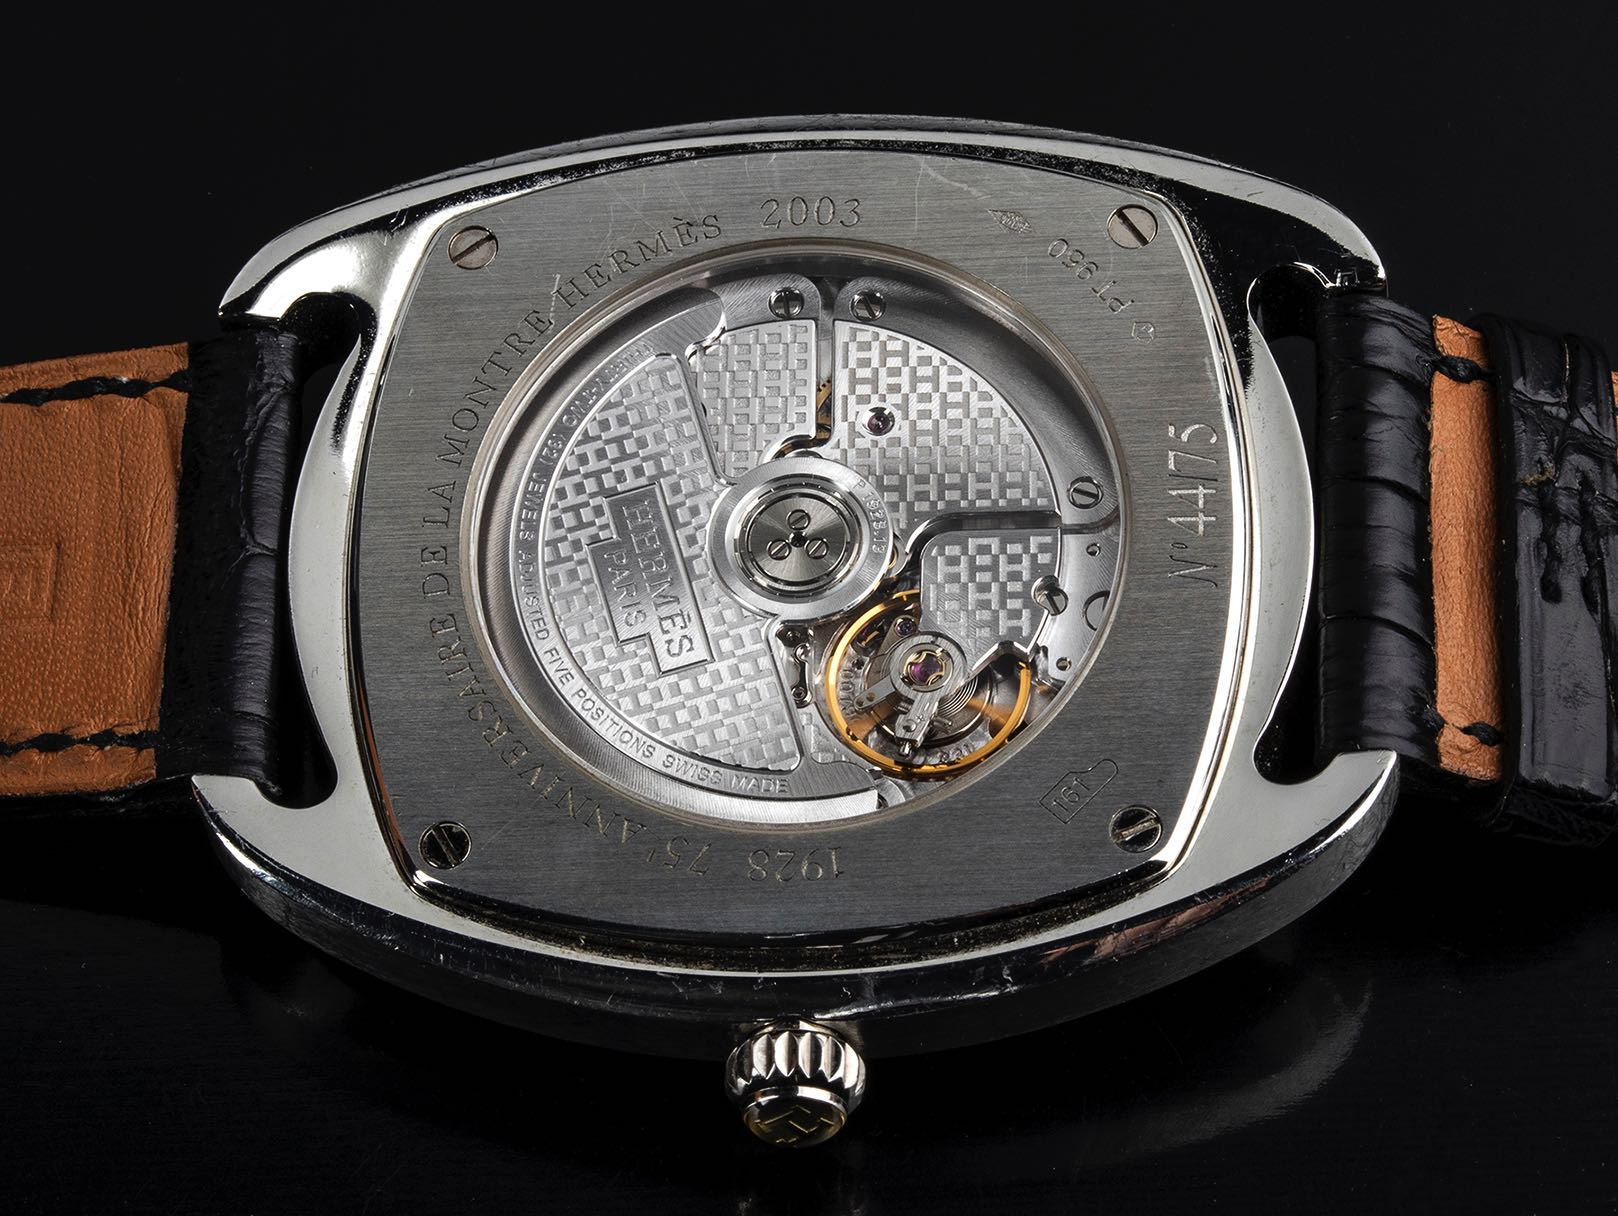 Hermes Dressage Platin, limited edition 75 pieces. 2003 - Image 2 of 3